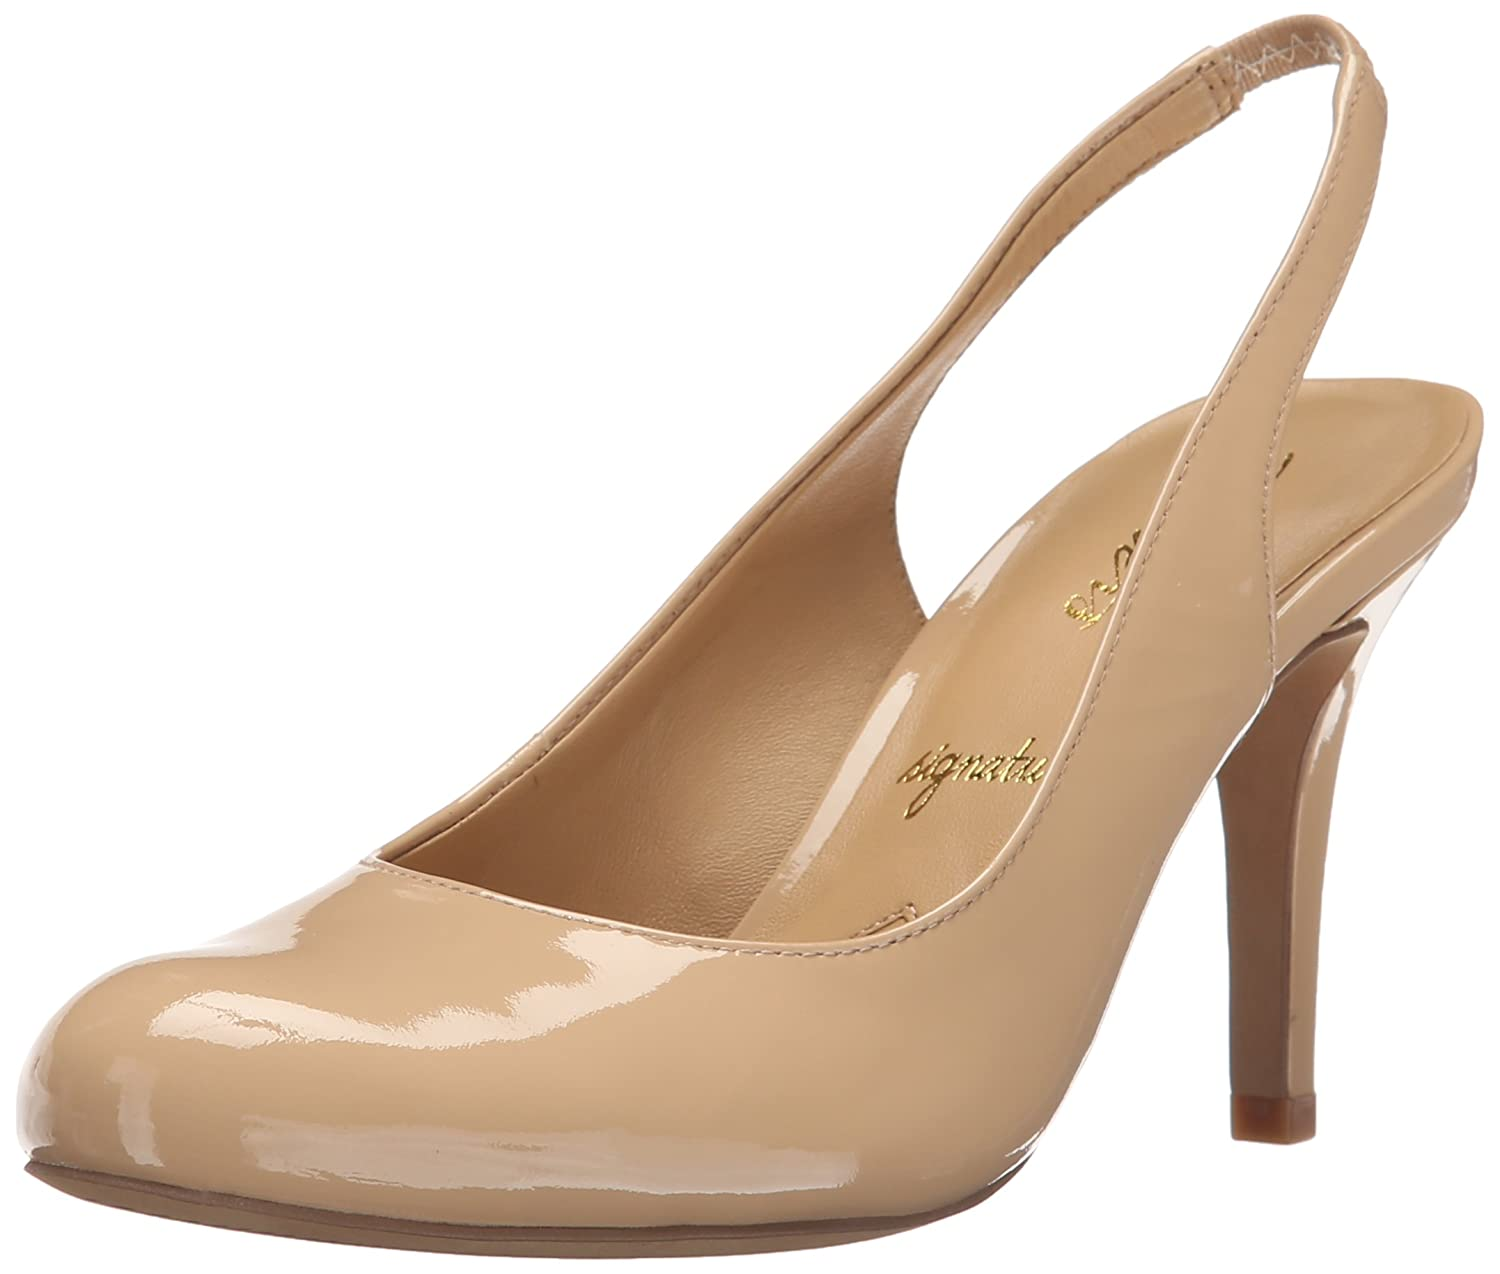 Trotters Women's Gidget Dress Pump B011EZMYMQ 12 N US|Nude